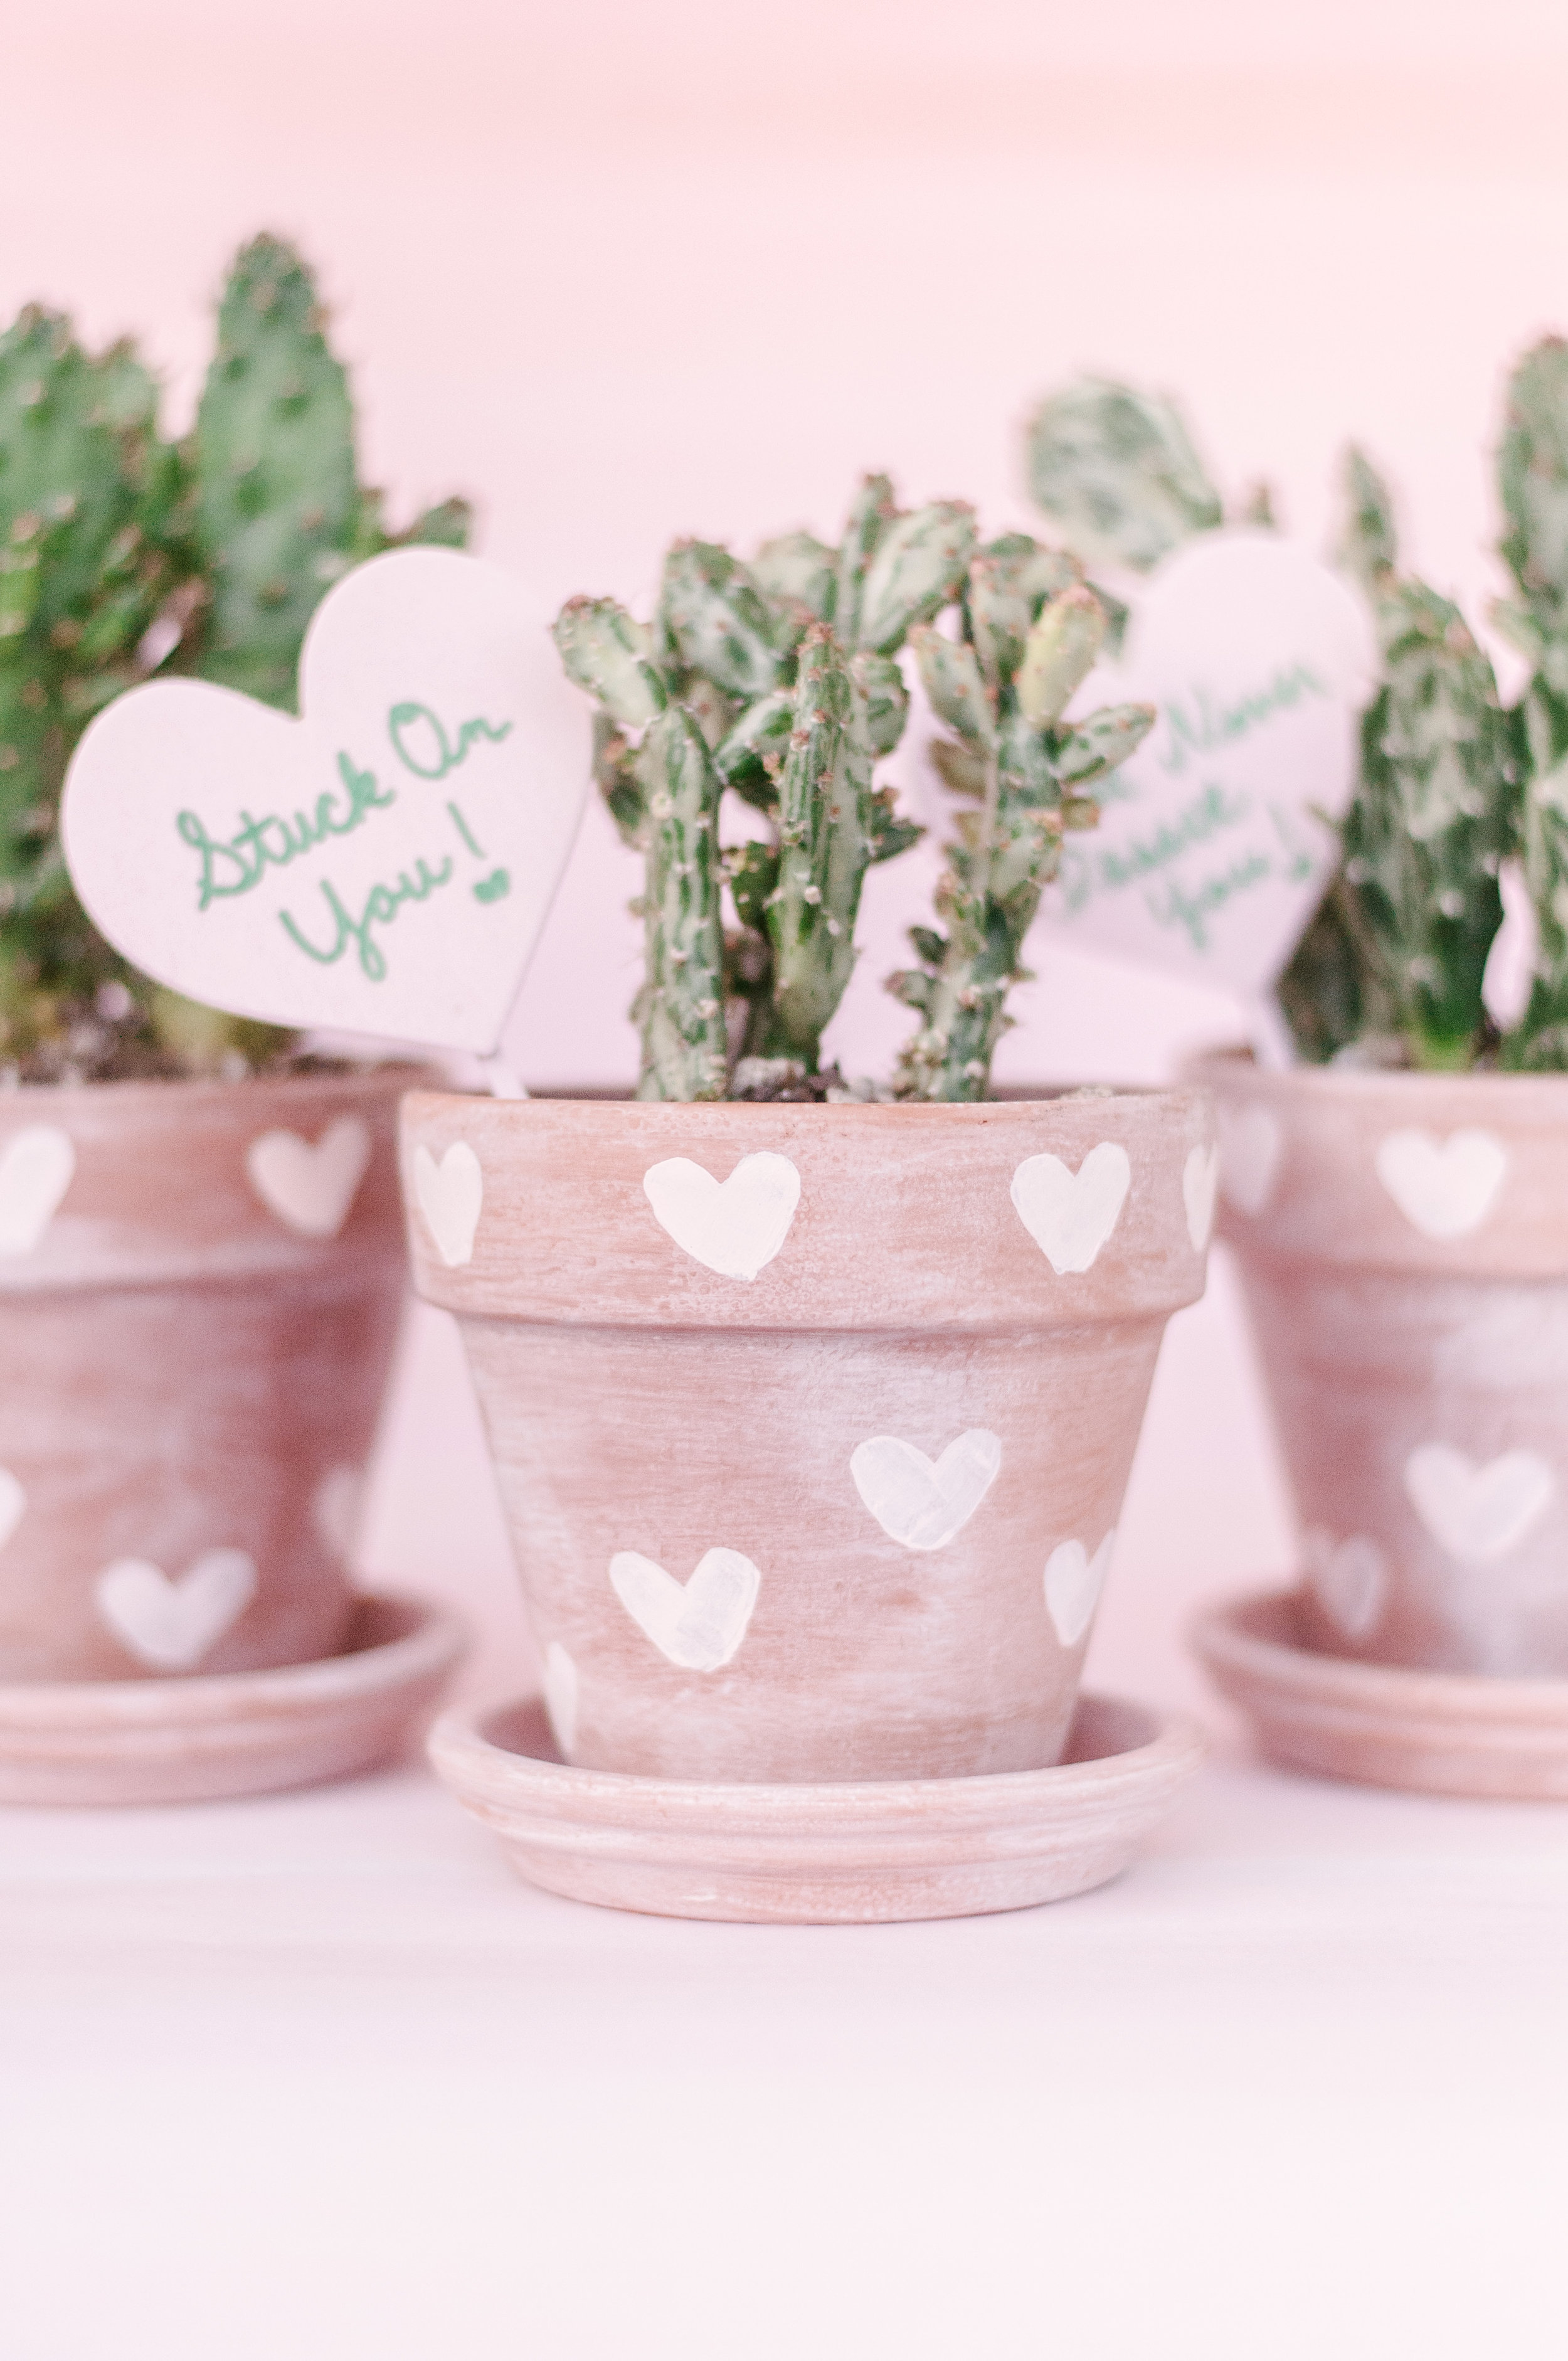 DIY Painted Heart-Print Terra Cotta Pots